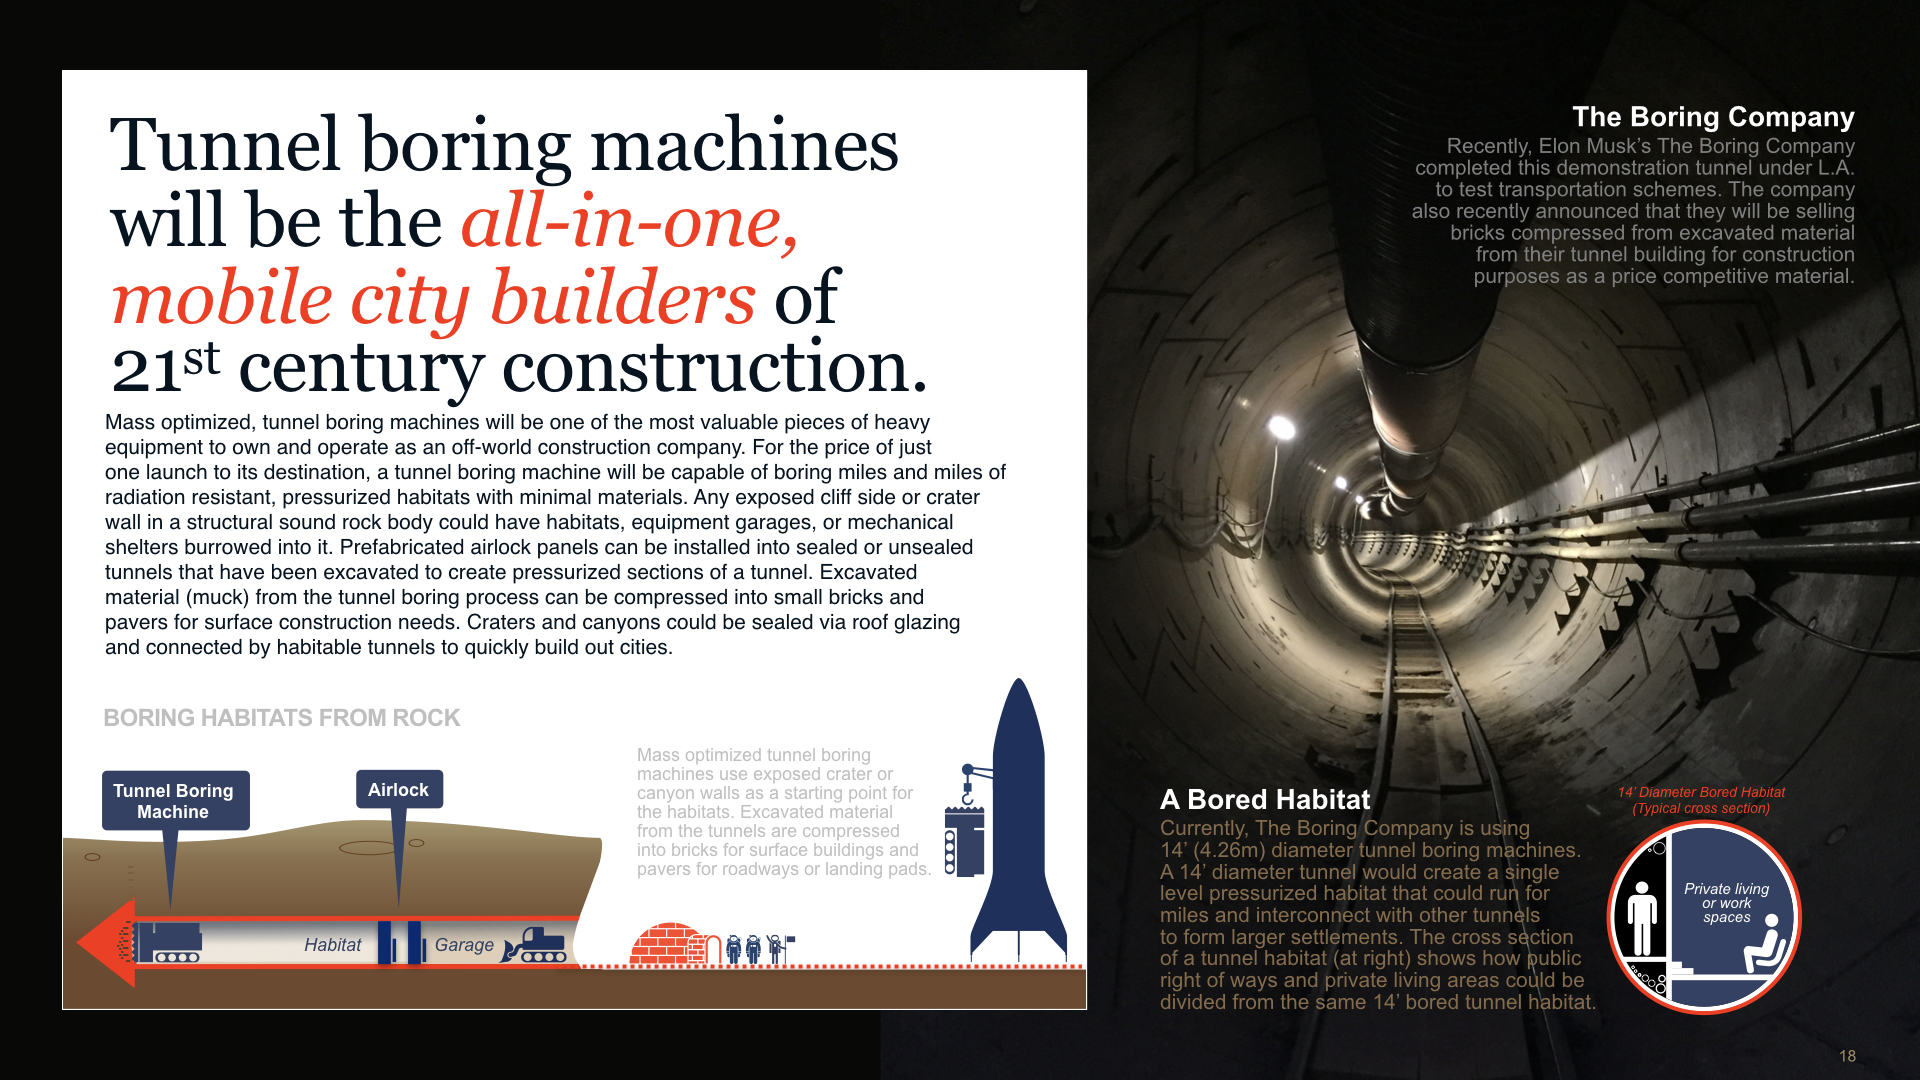 McKinsey_SpaceEconomy2019_CONSTRUCTION_overview_v12.018.png